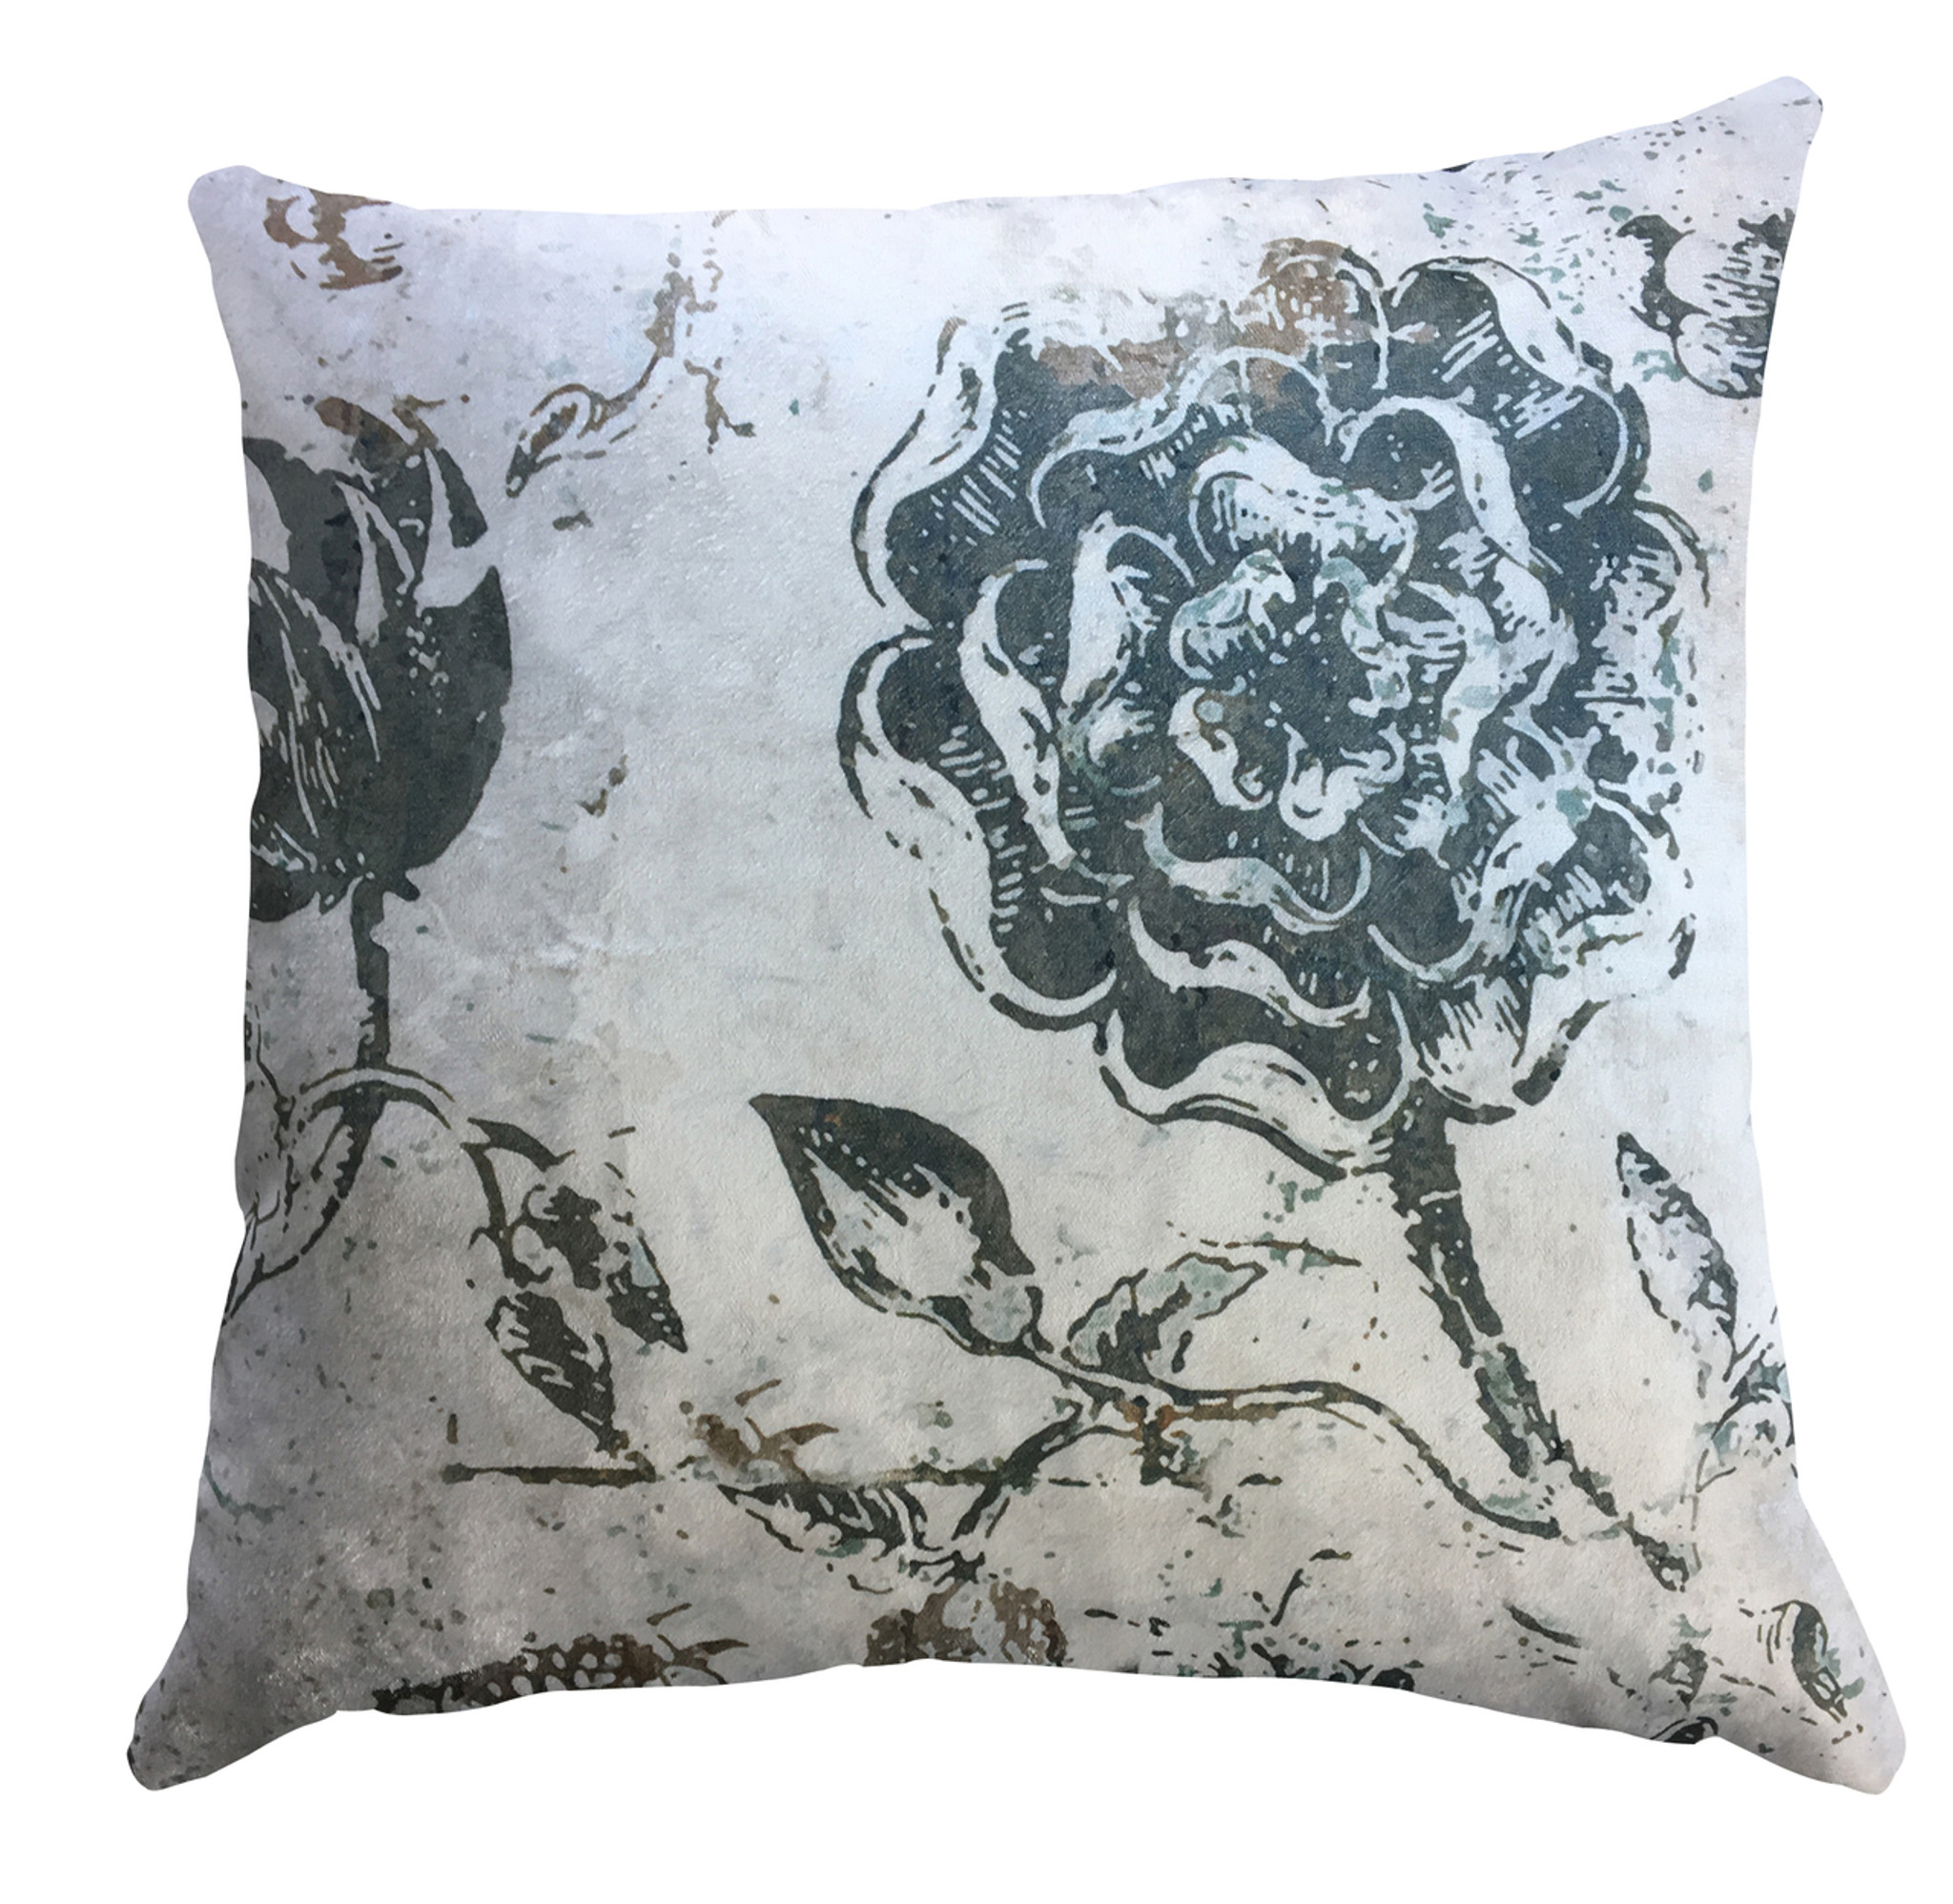 Cushion Cover - Botanical Graffiti Light